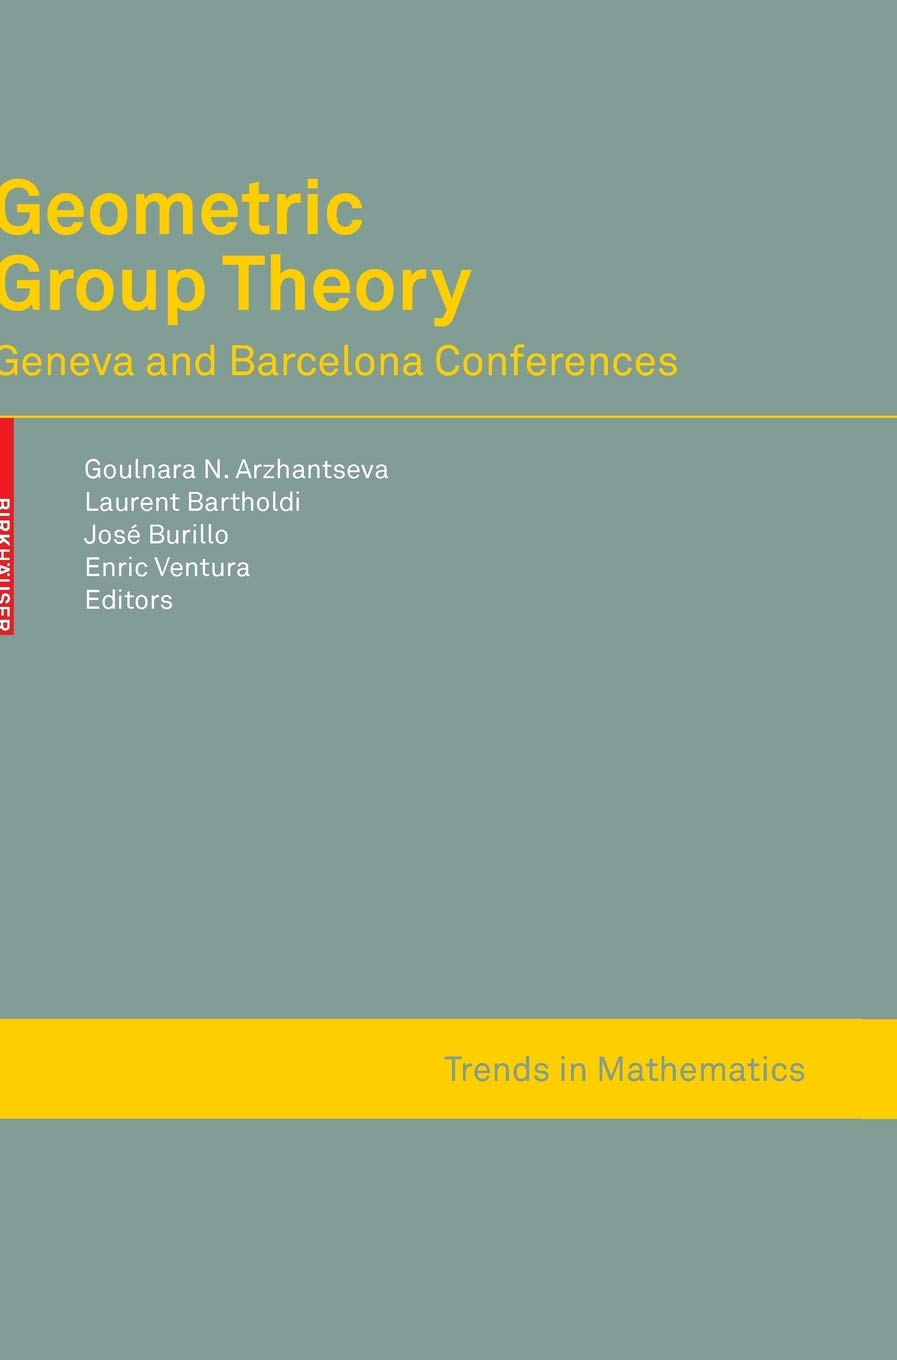 Geometric Group Theory: Geneva and Barcelona Conferences